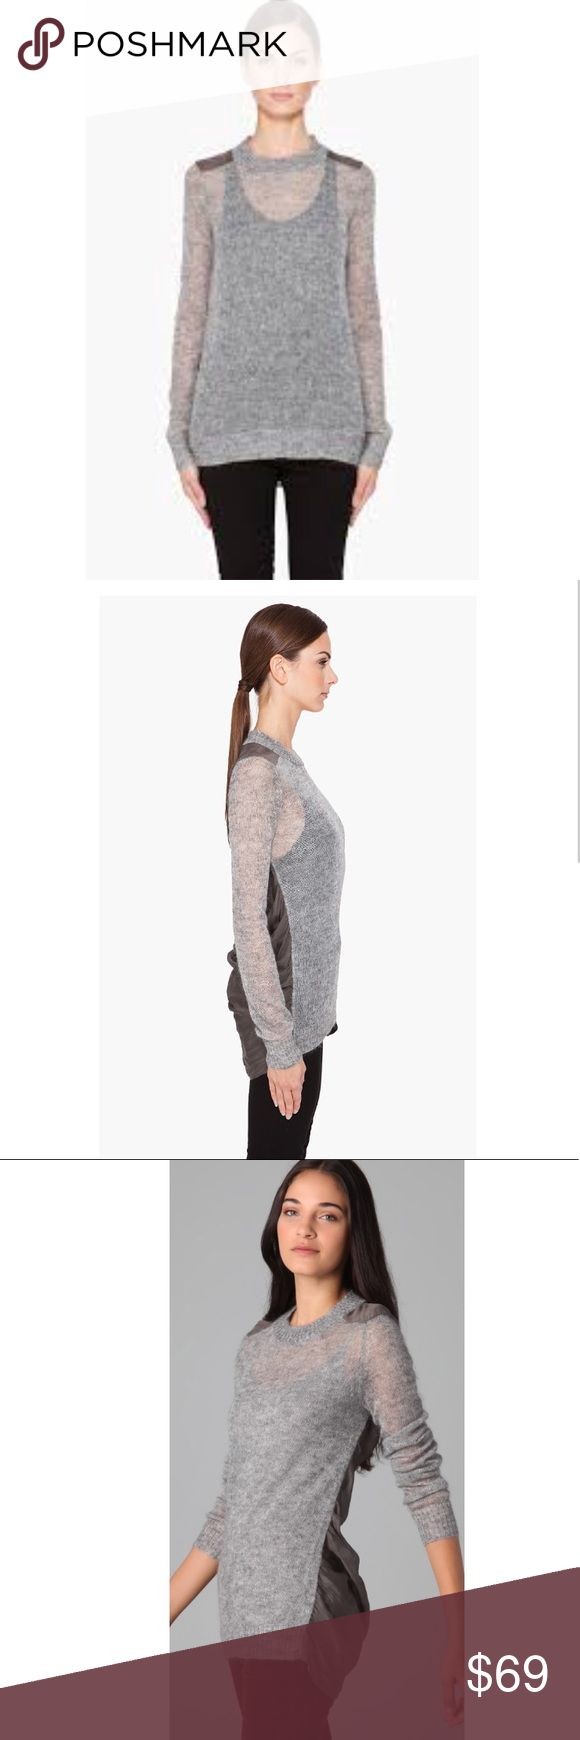 "Theory Josetta Picturesque Mohair Knit Top M This crew-neck mohair Theory cute sweater features a sheer chiffon back panel. Ribbed edges and asymmetrical hem.  Brand new with tags Color: Silver Heather/Moss (its like a metallic gray color) Long sleeves  Semi-sheer Length: 29"" (from front shoulder) Back length: 33"" Fabric: mohair/silk chiffon (50% super kid mohair/43% polyamide/7% extra-fine merino wool) doesn't come with an inner camisole. Back panel: 100% silk. Dry clean. Imported Style…"